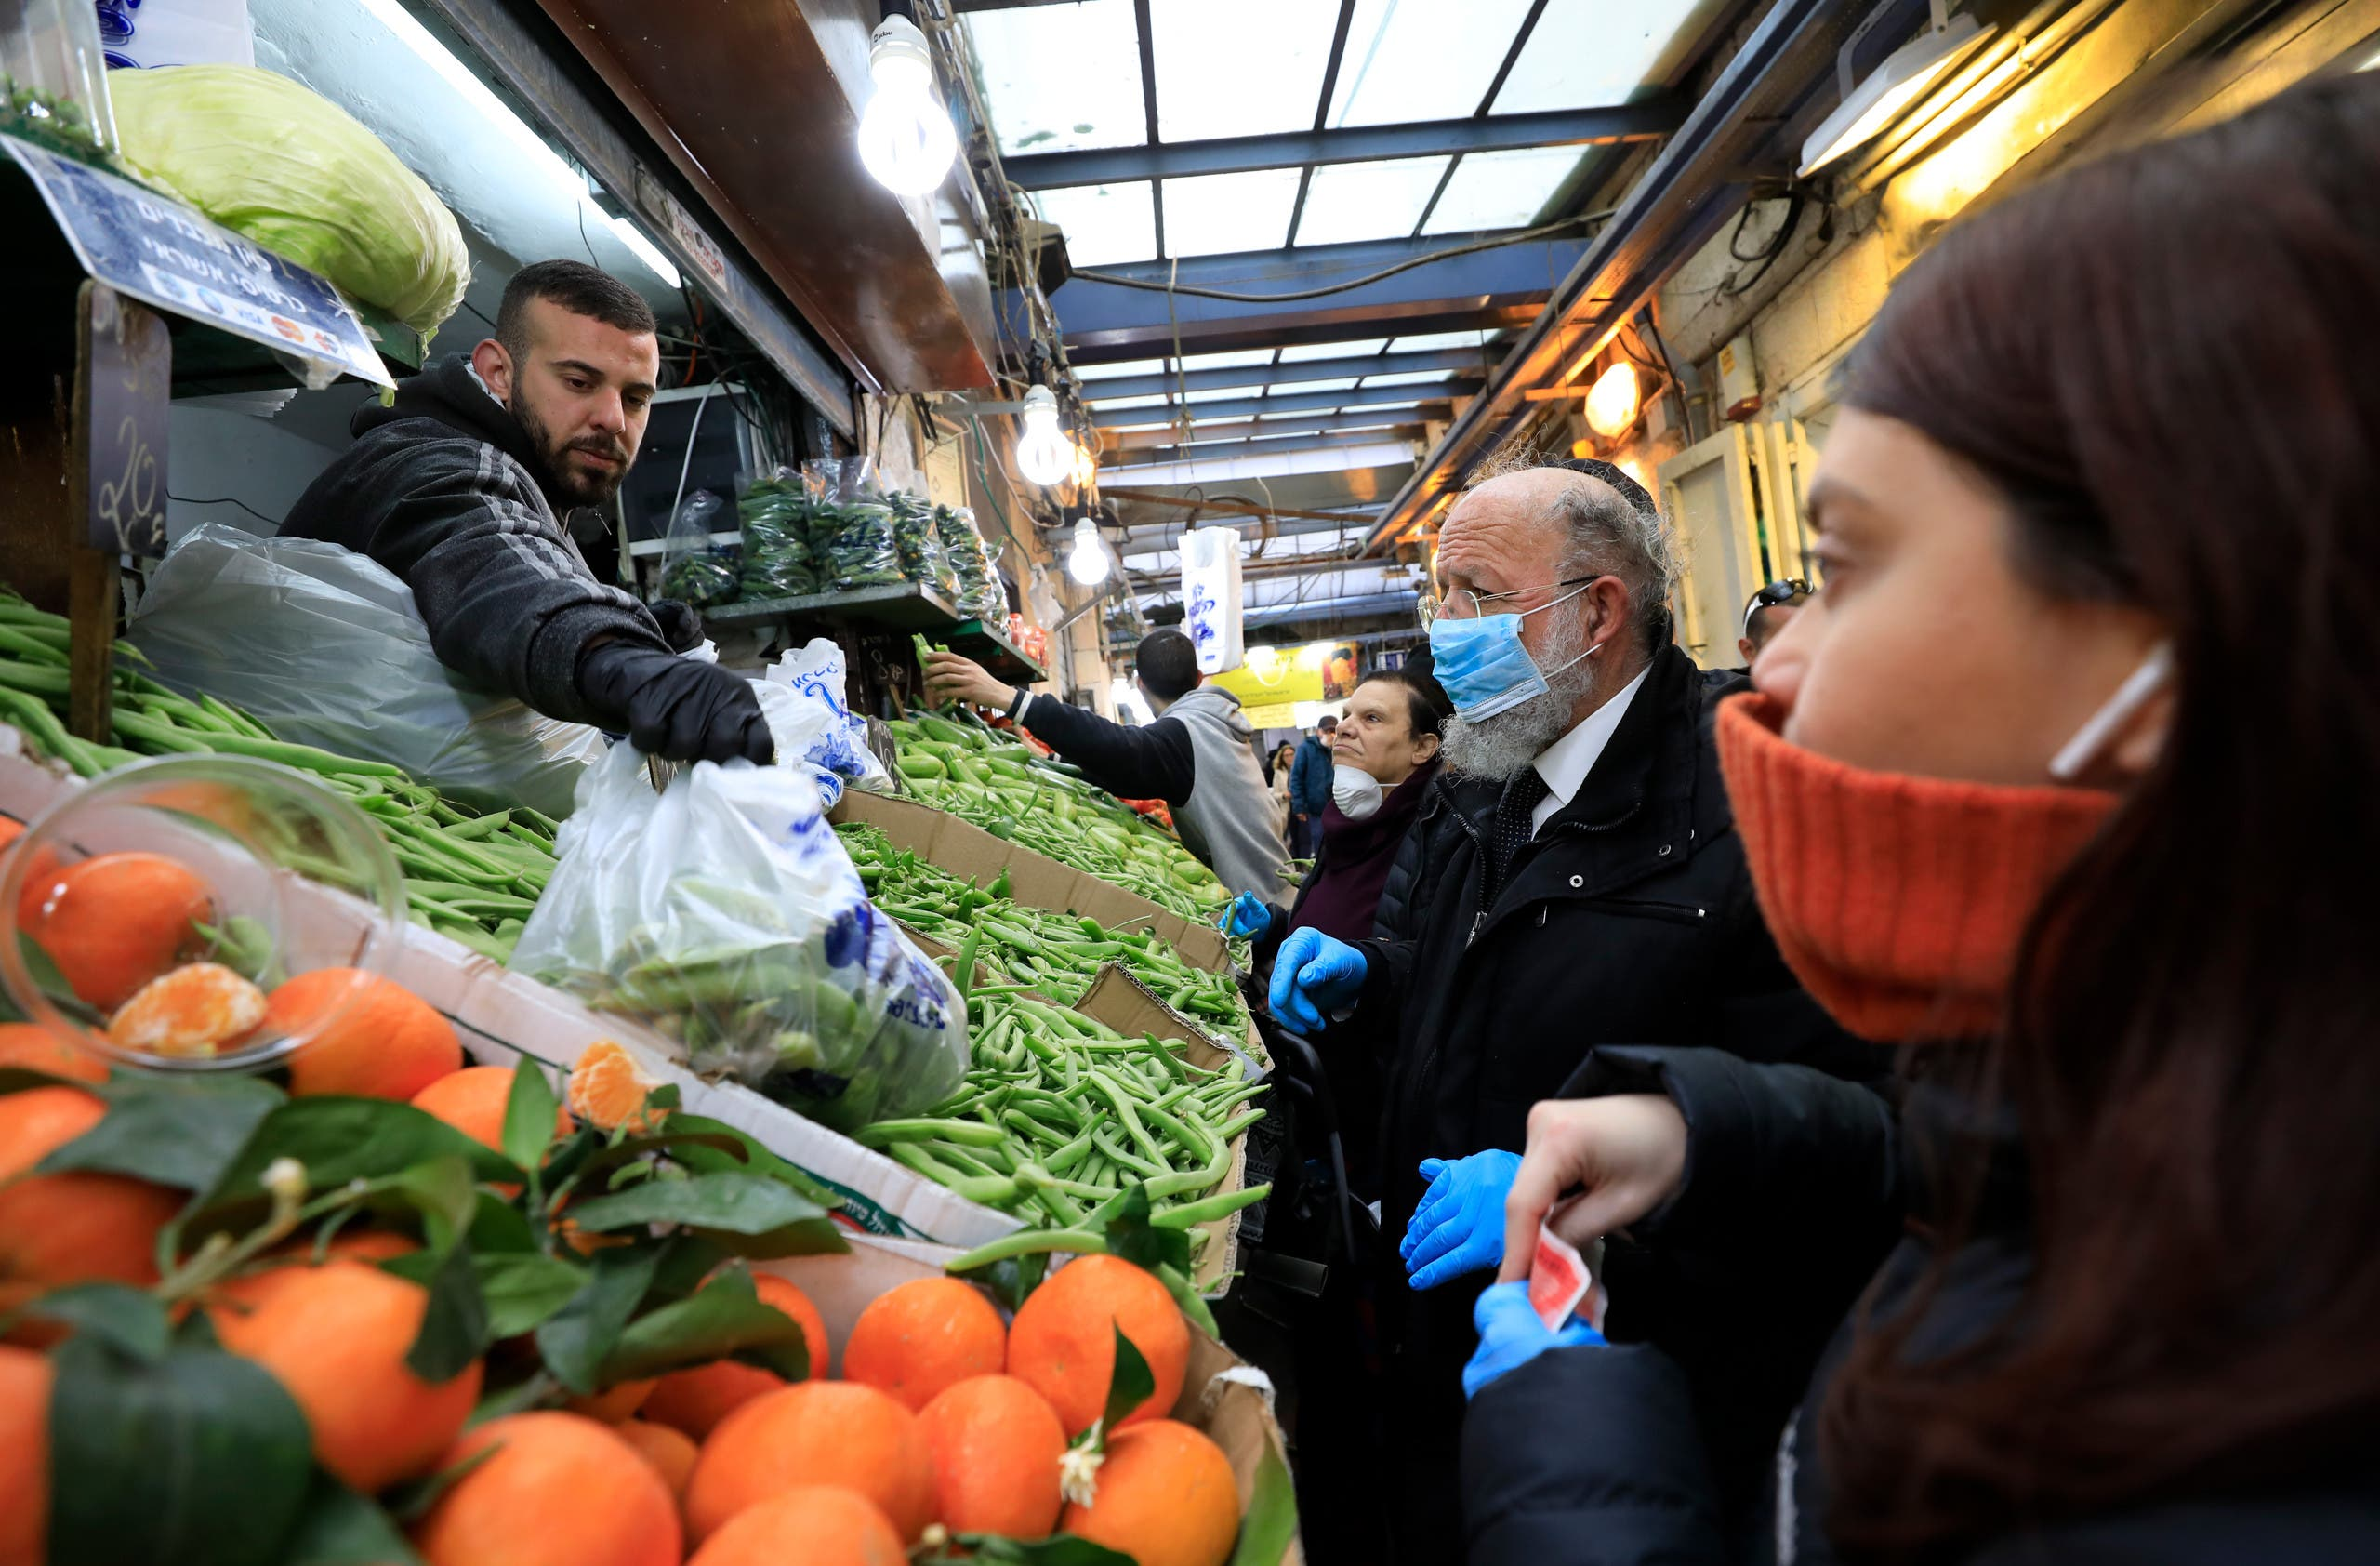 People wearing masks shop at Jerusalem's Mahane Yehuda market on March 19, 2020. (AP)